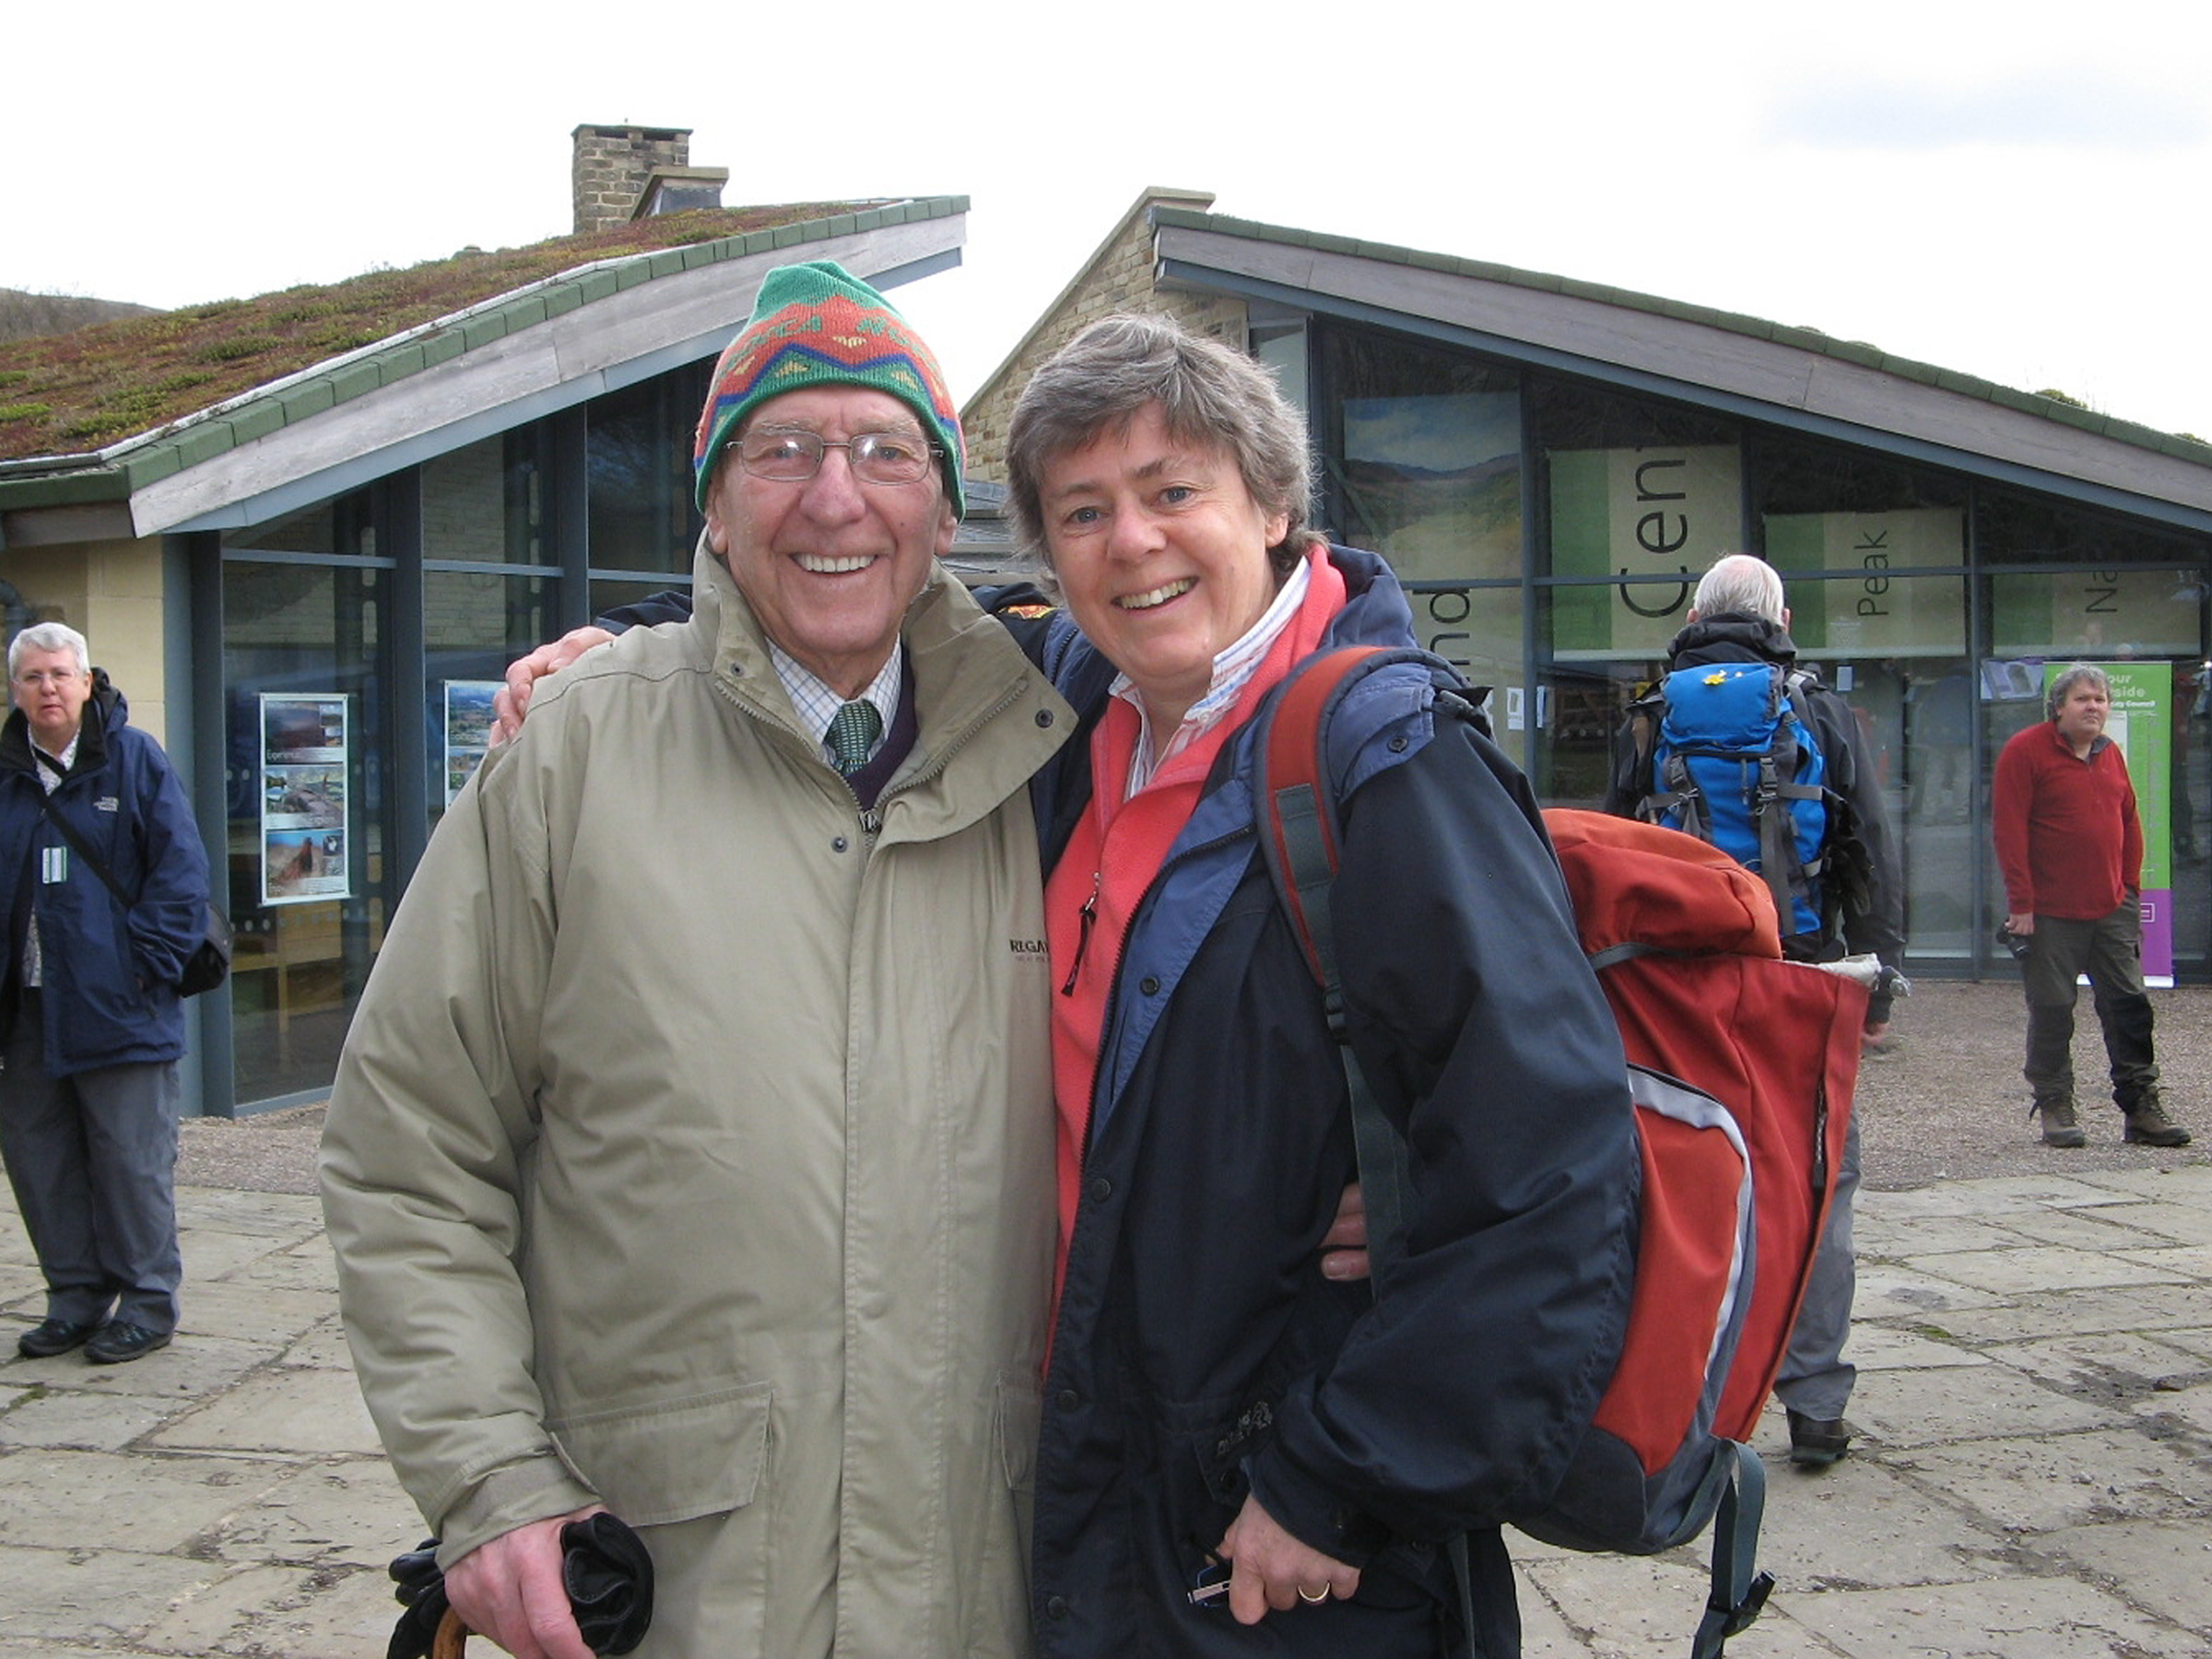 John Bunting Ramblers vice president with Kate Ashbrook